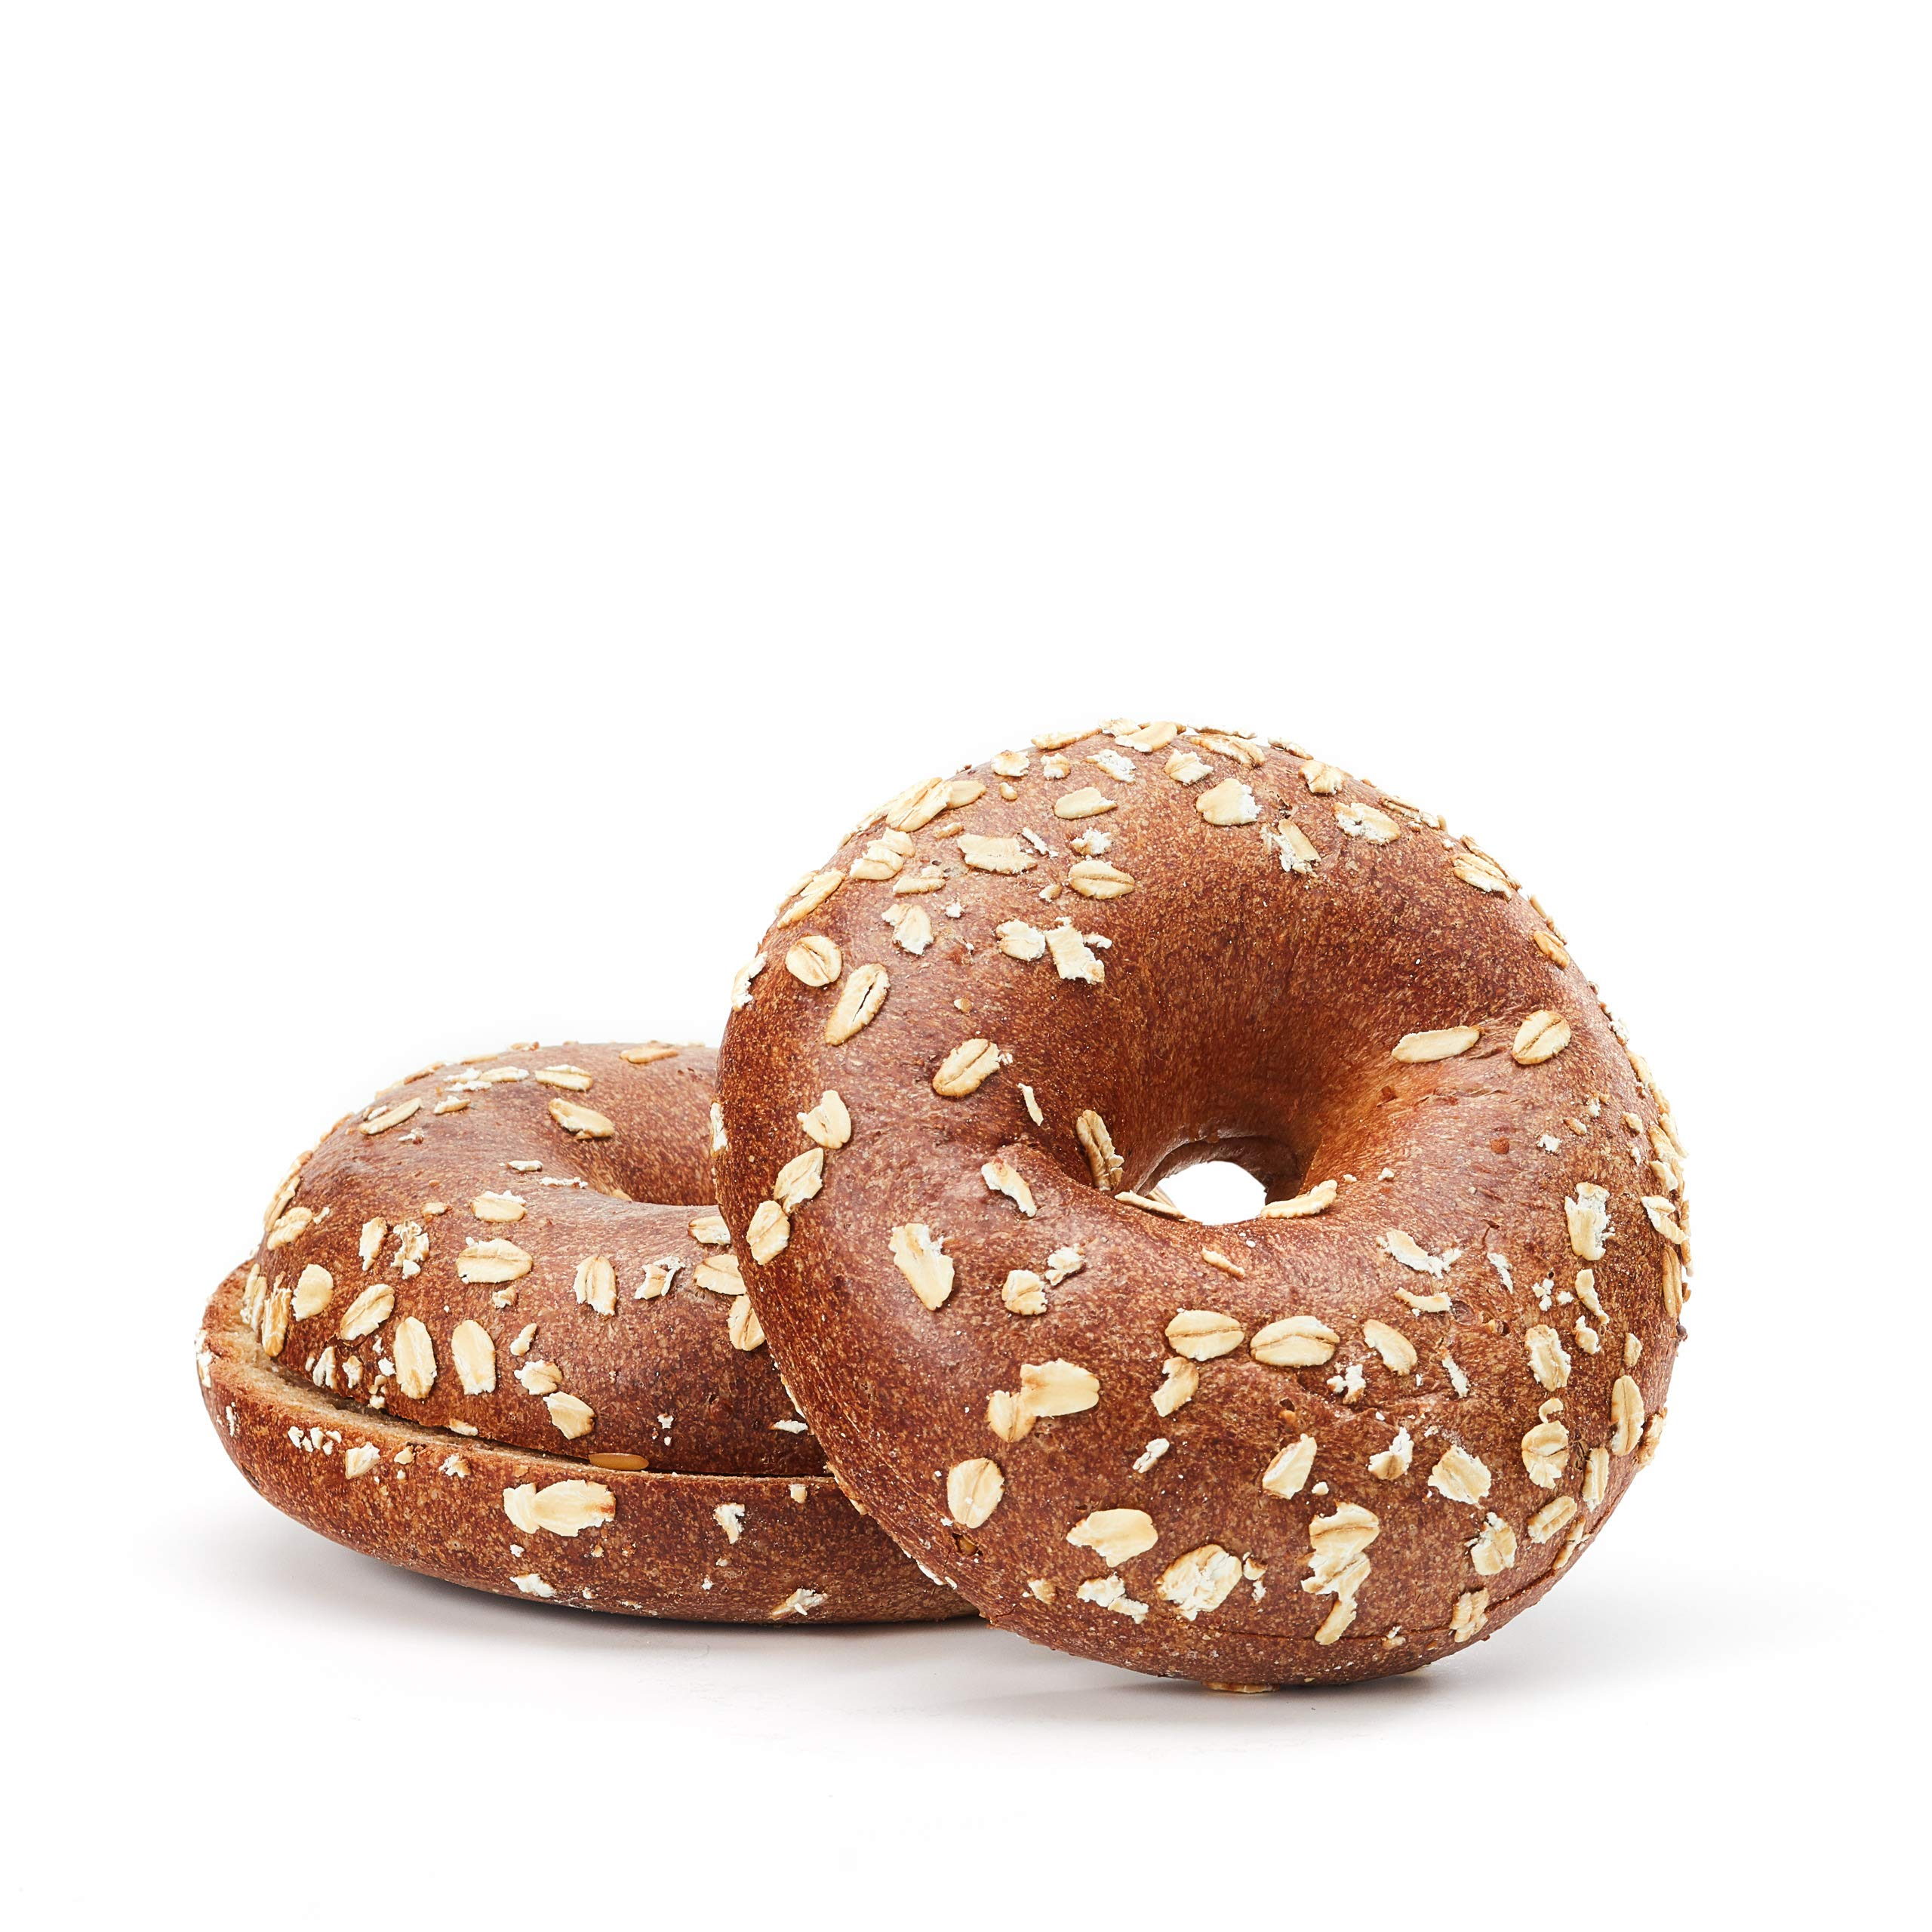 P28 High Protein Bagels, 19 OZ by P28 Foods (Image #4)